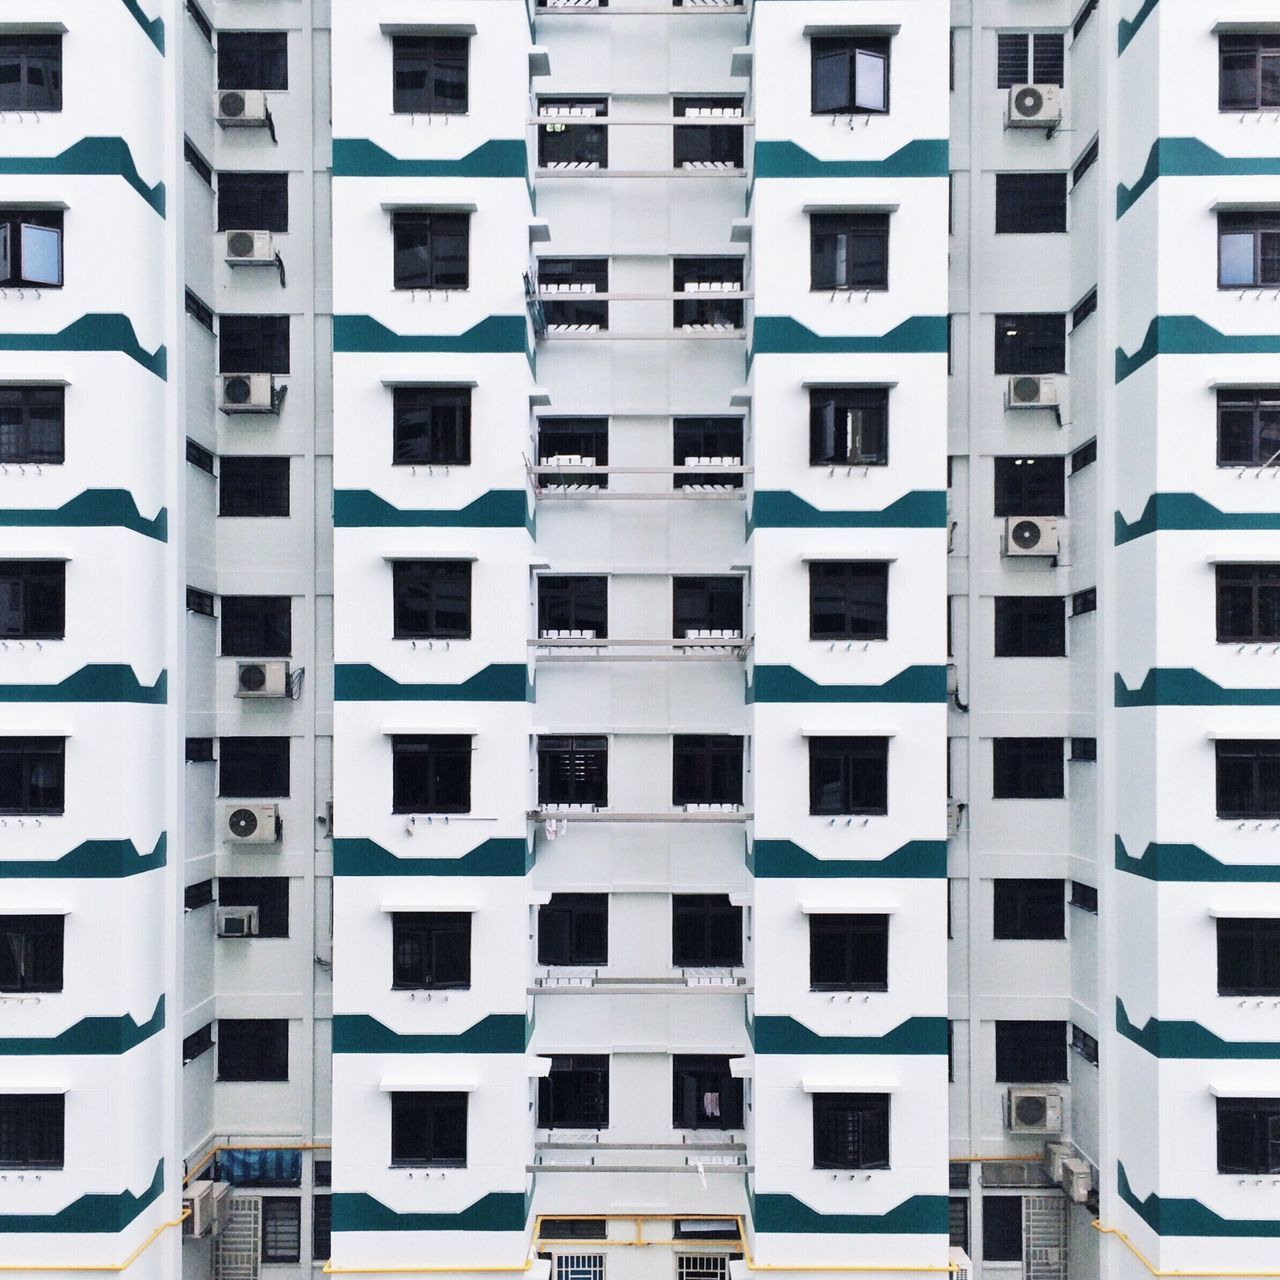 Beautiful stock photos of muster, Singapore, Square Image, apartment, architecture